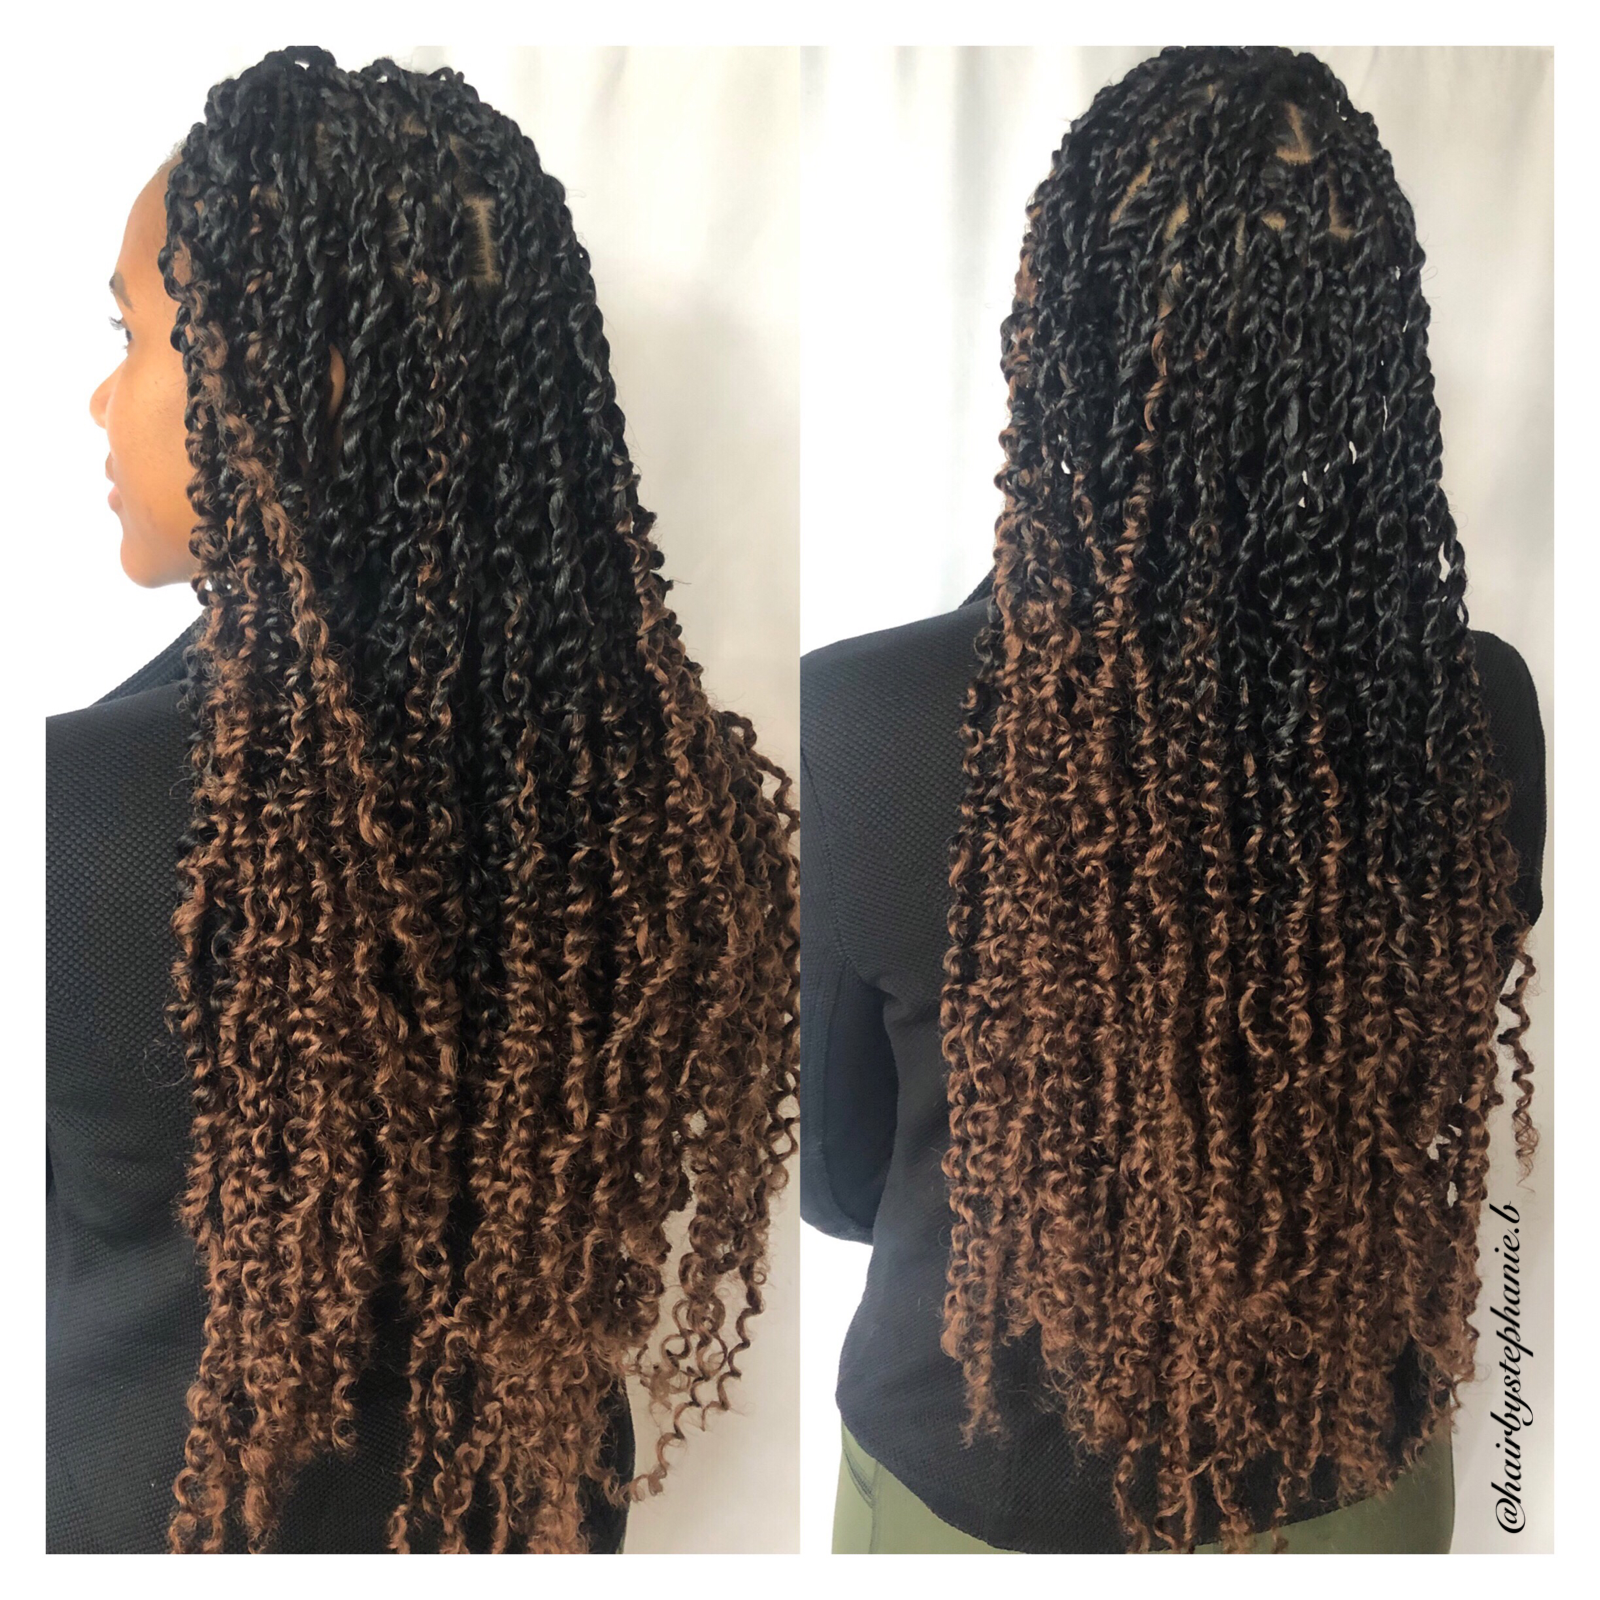 Ombré passion twists by @hairbystephanie.b @stephanieb.style #passiontwists  #freetresshair #protectivestyles  #blackhairstyles  #twists  #LAbraider  #LAstylist #passiontwistshairstyle